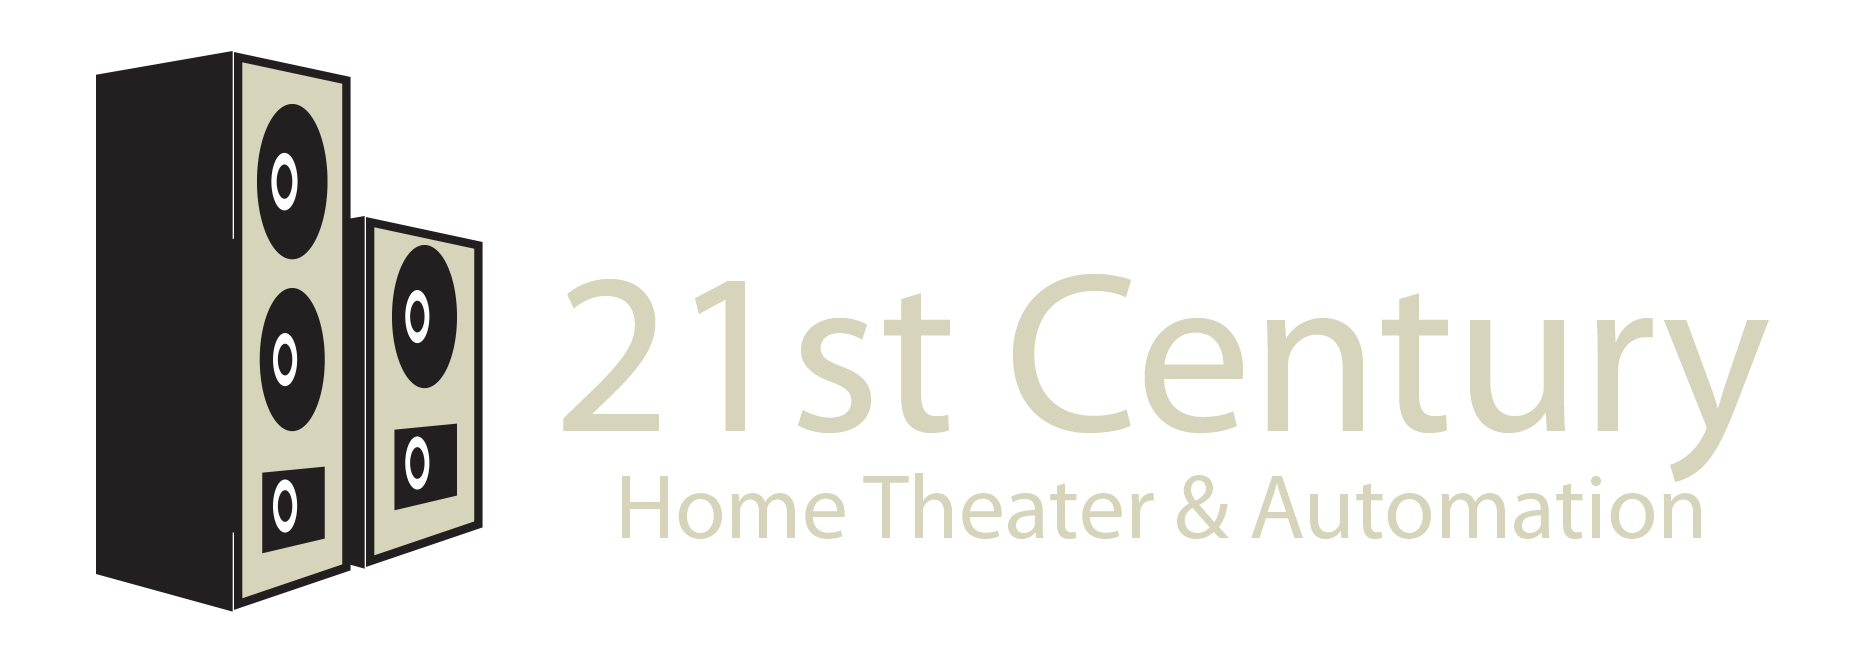 21st Century Home Theater & Automations